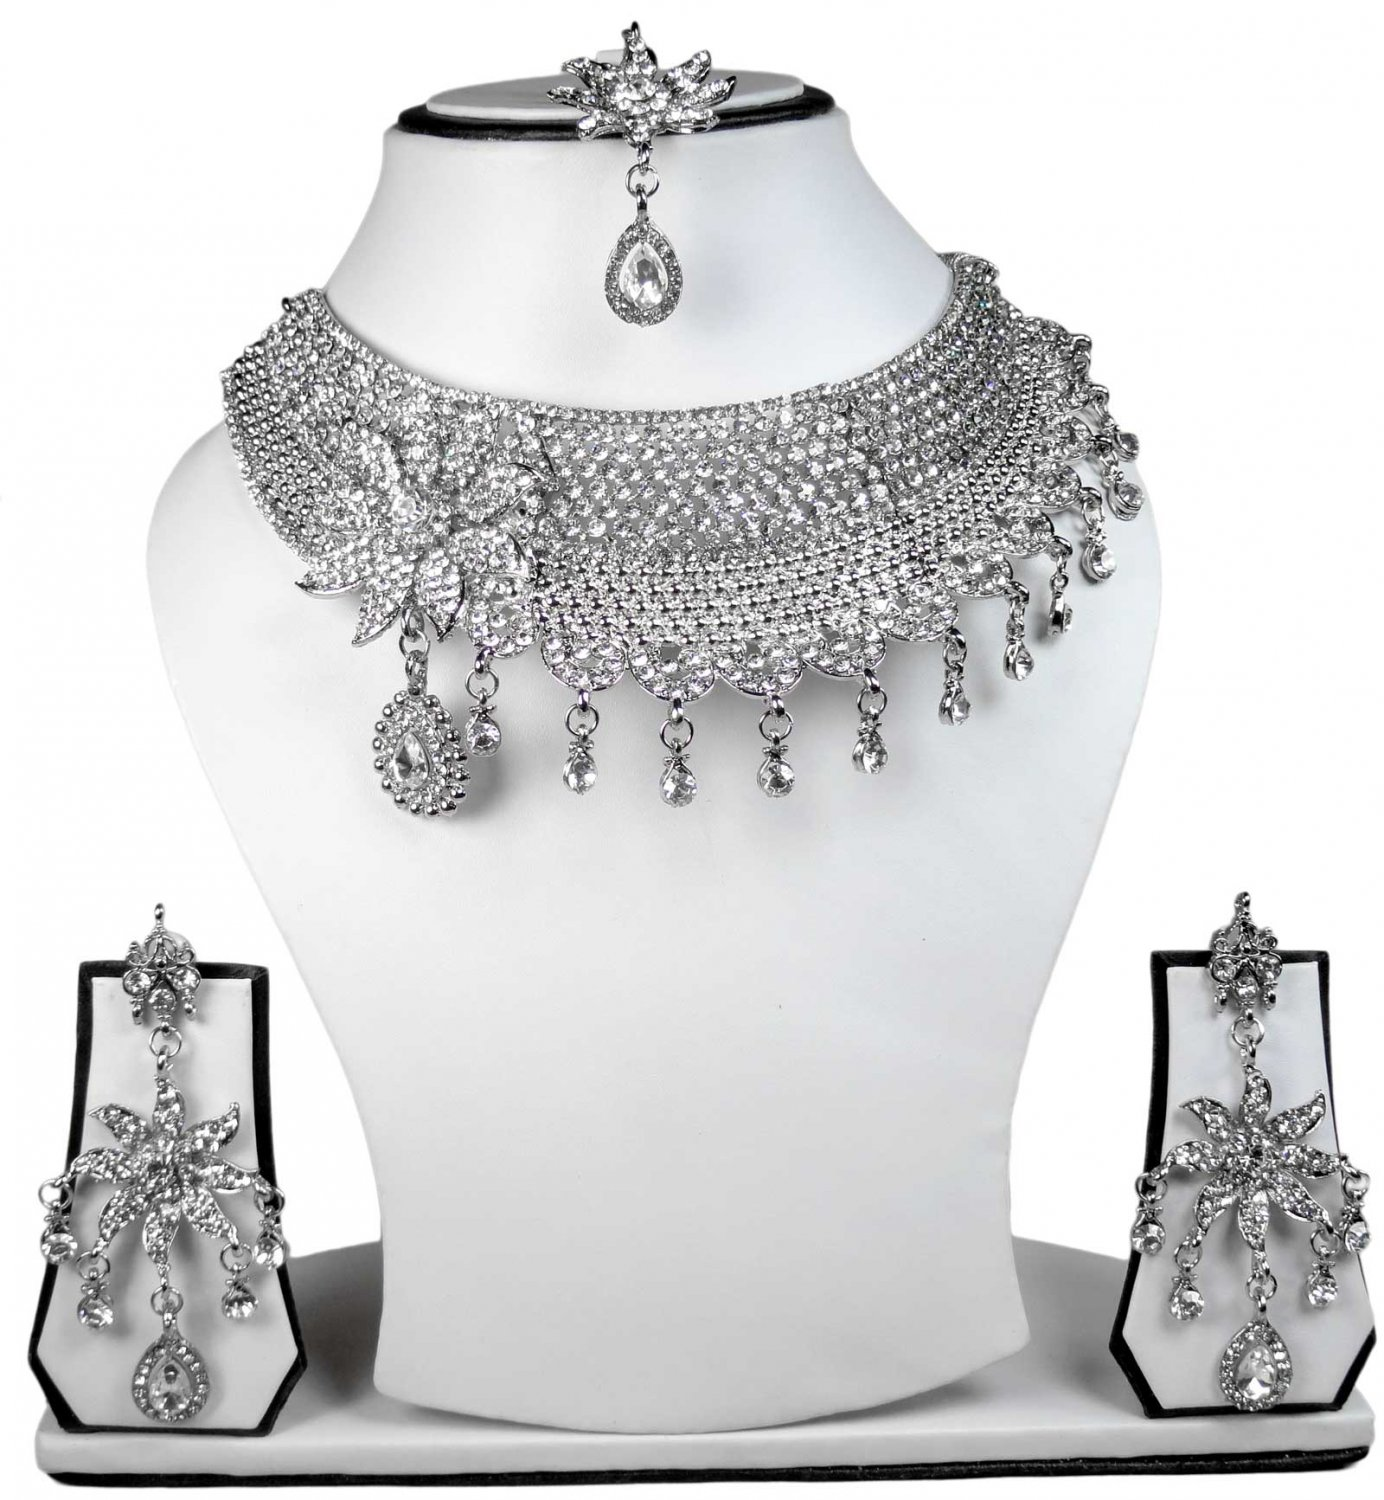 Silver Plated Stunning AD Pearl Jewelry Flower Styled Necklace Matching Earrings Set White Color